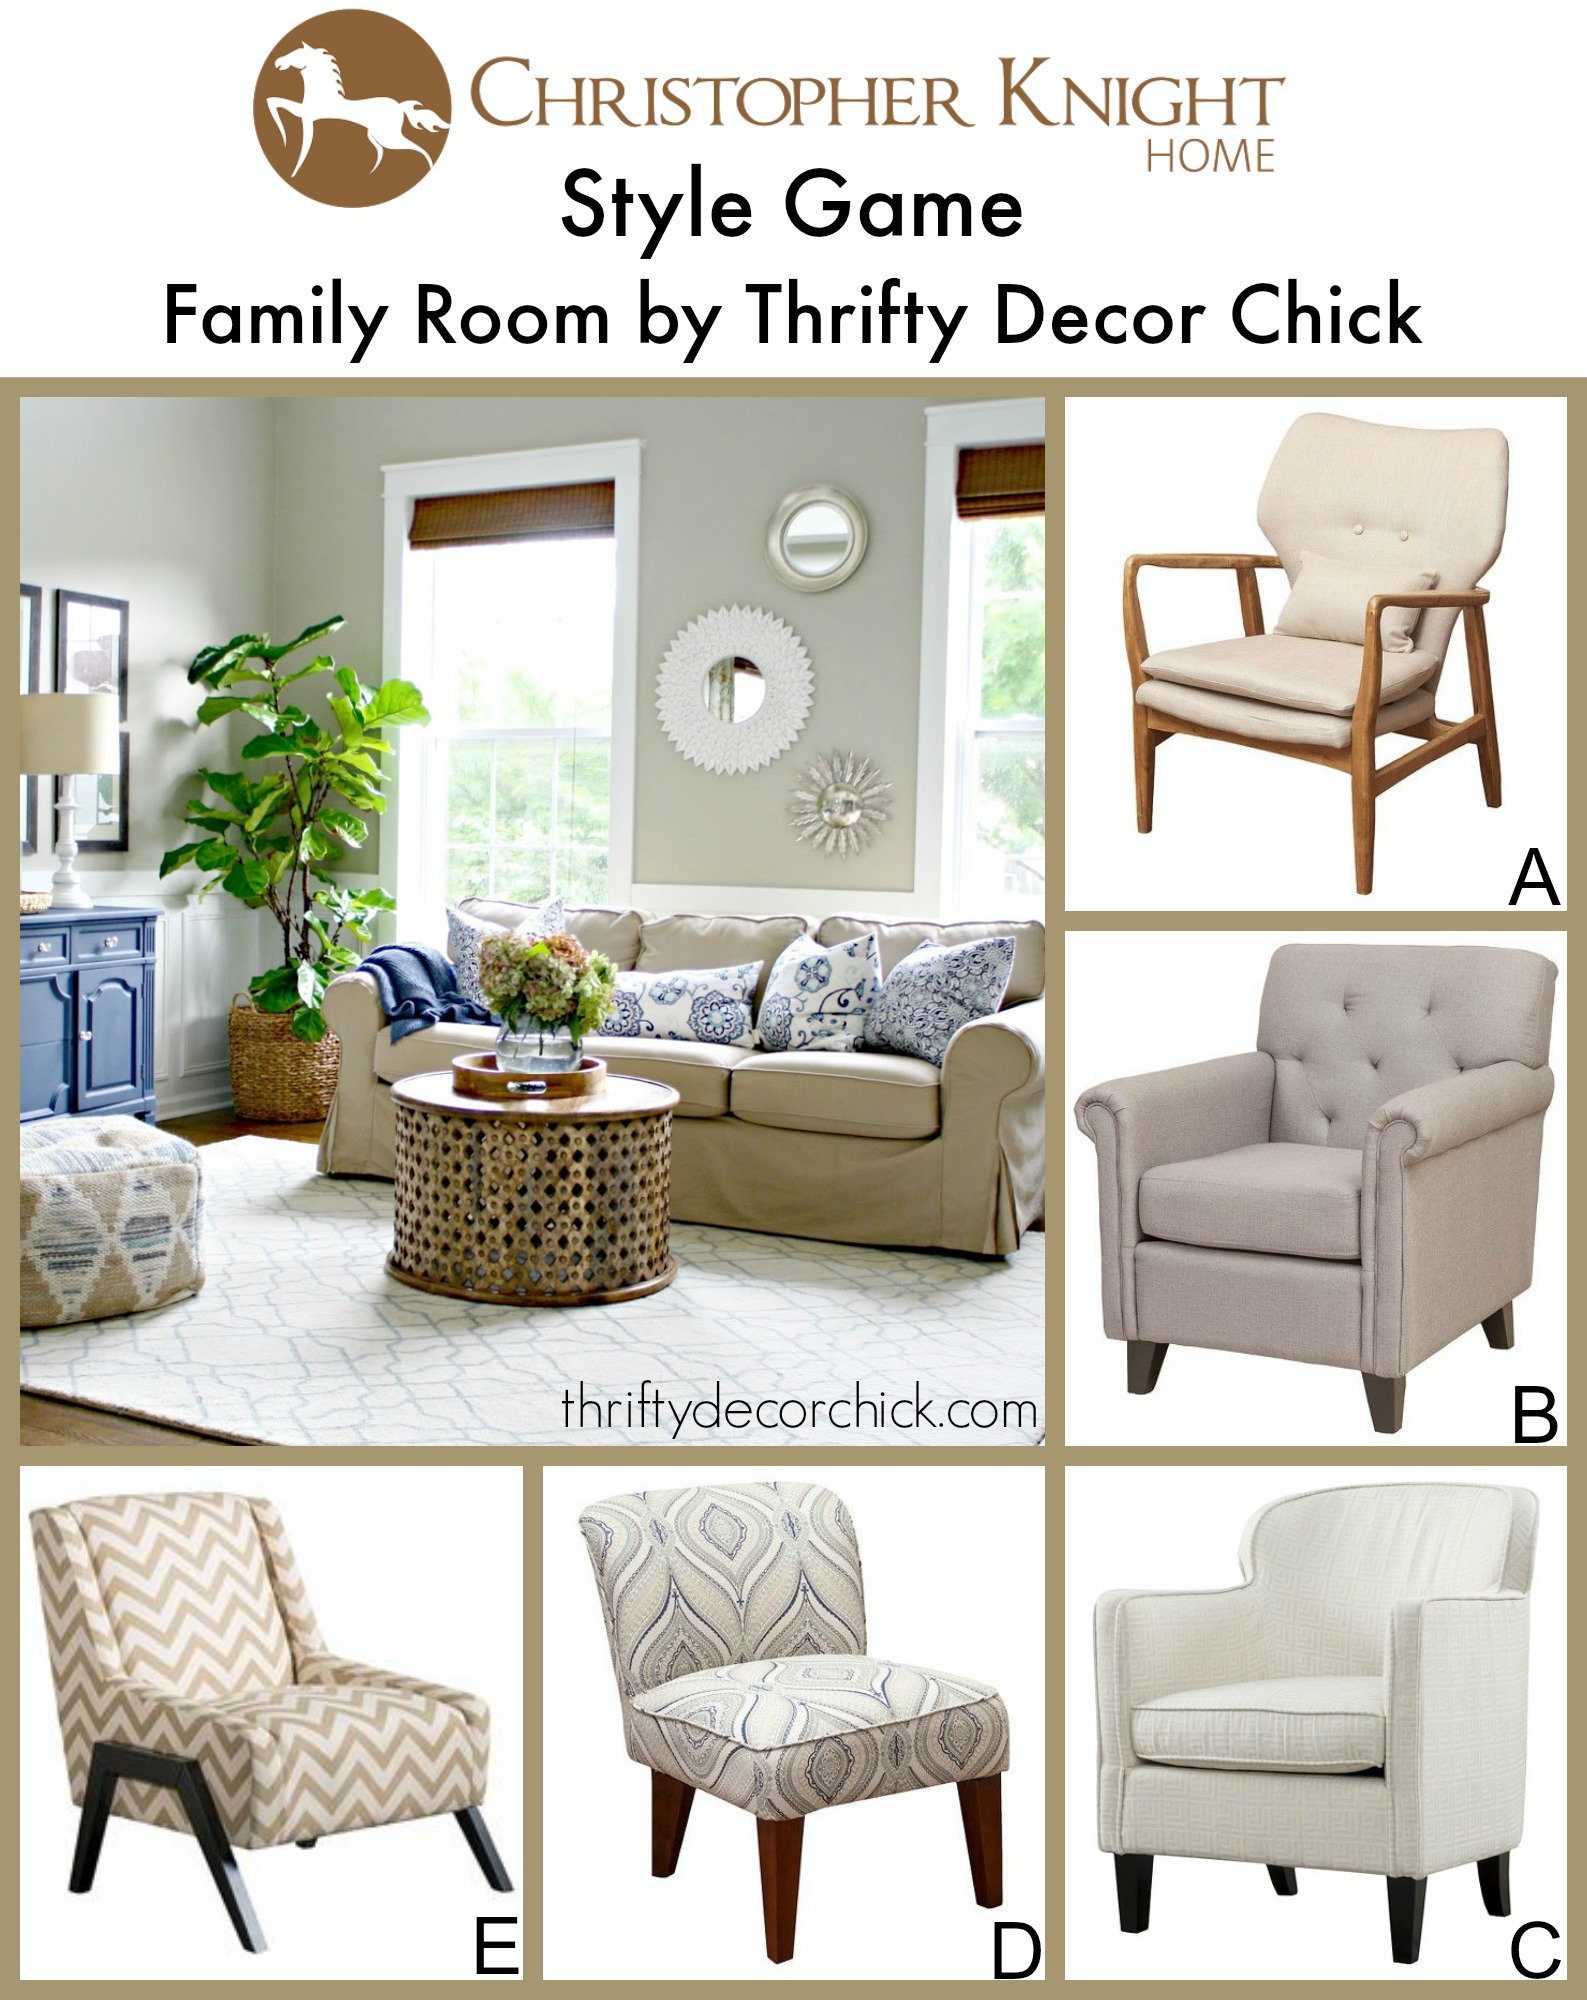 Style game family room by thrifty decor chick for Thrifty decor